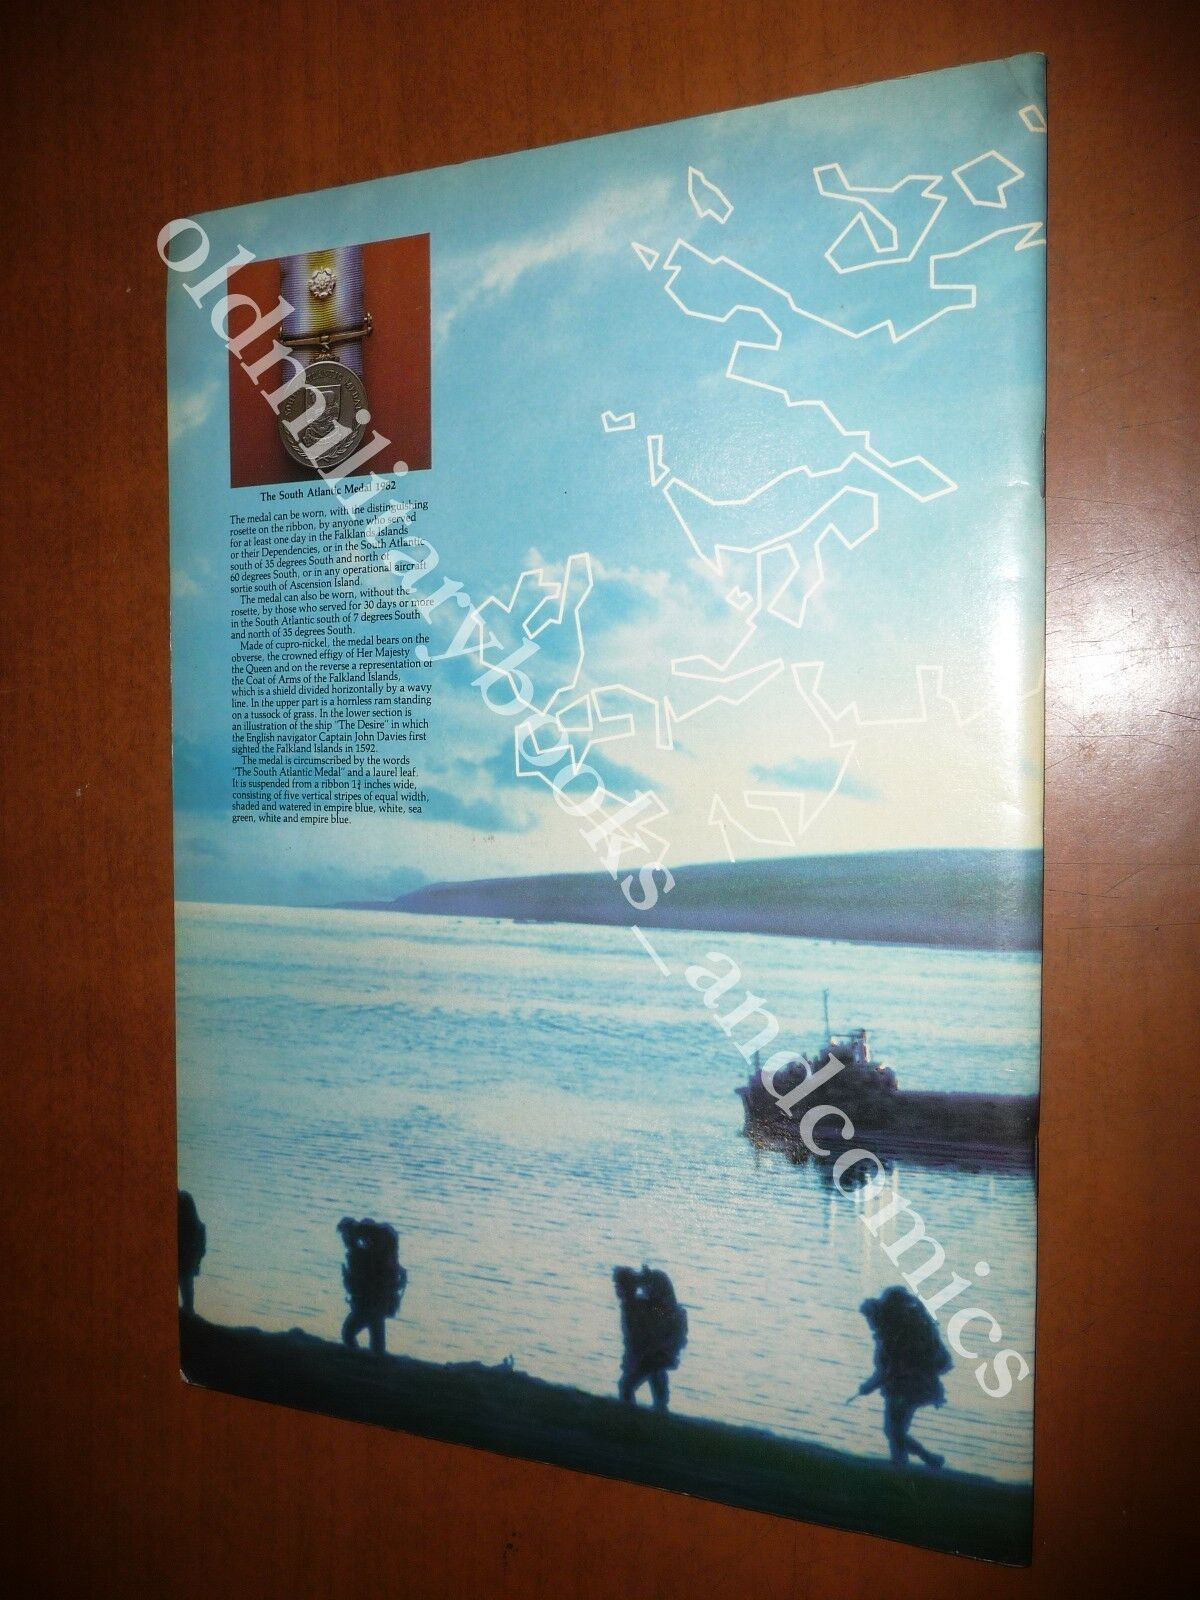 THE BRITISH ARMY IN THE FALKLANDS 1982 ARTIGLIERIA ARMI PARACADUTISMO